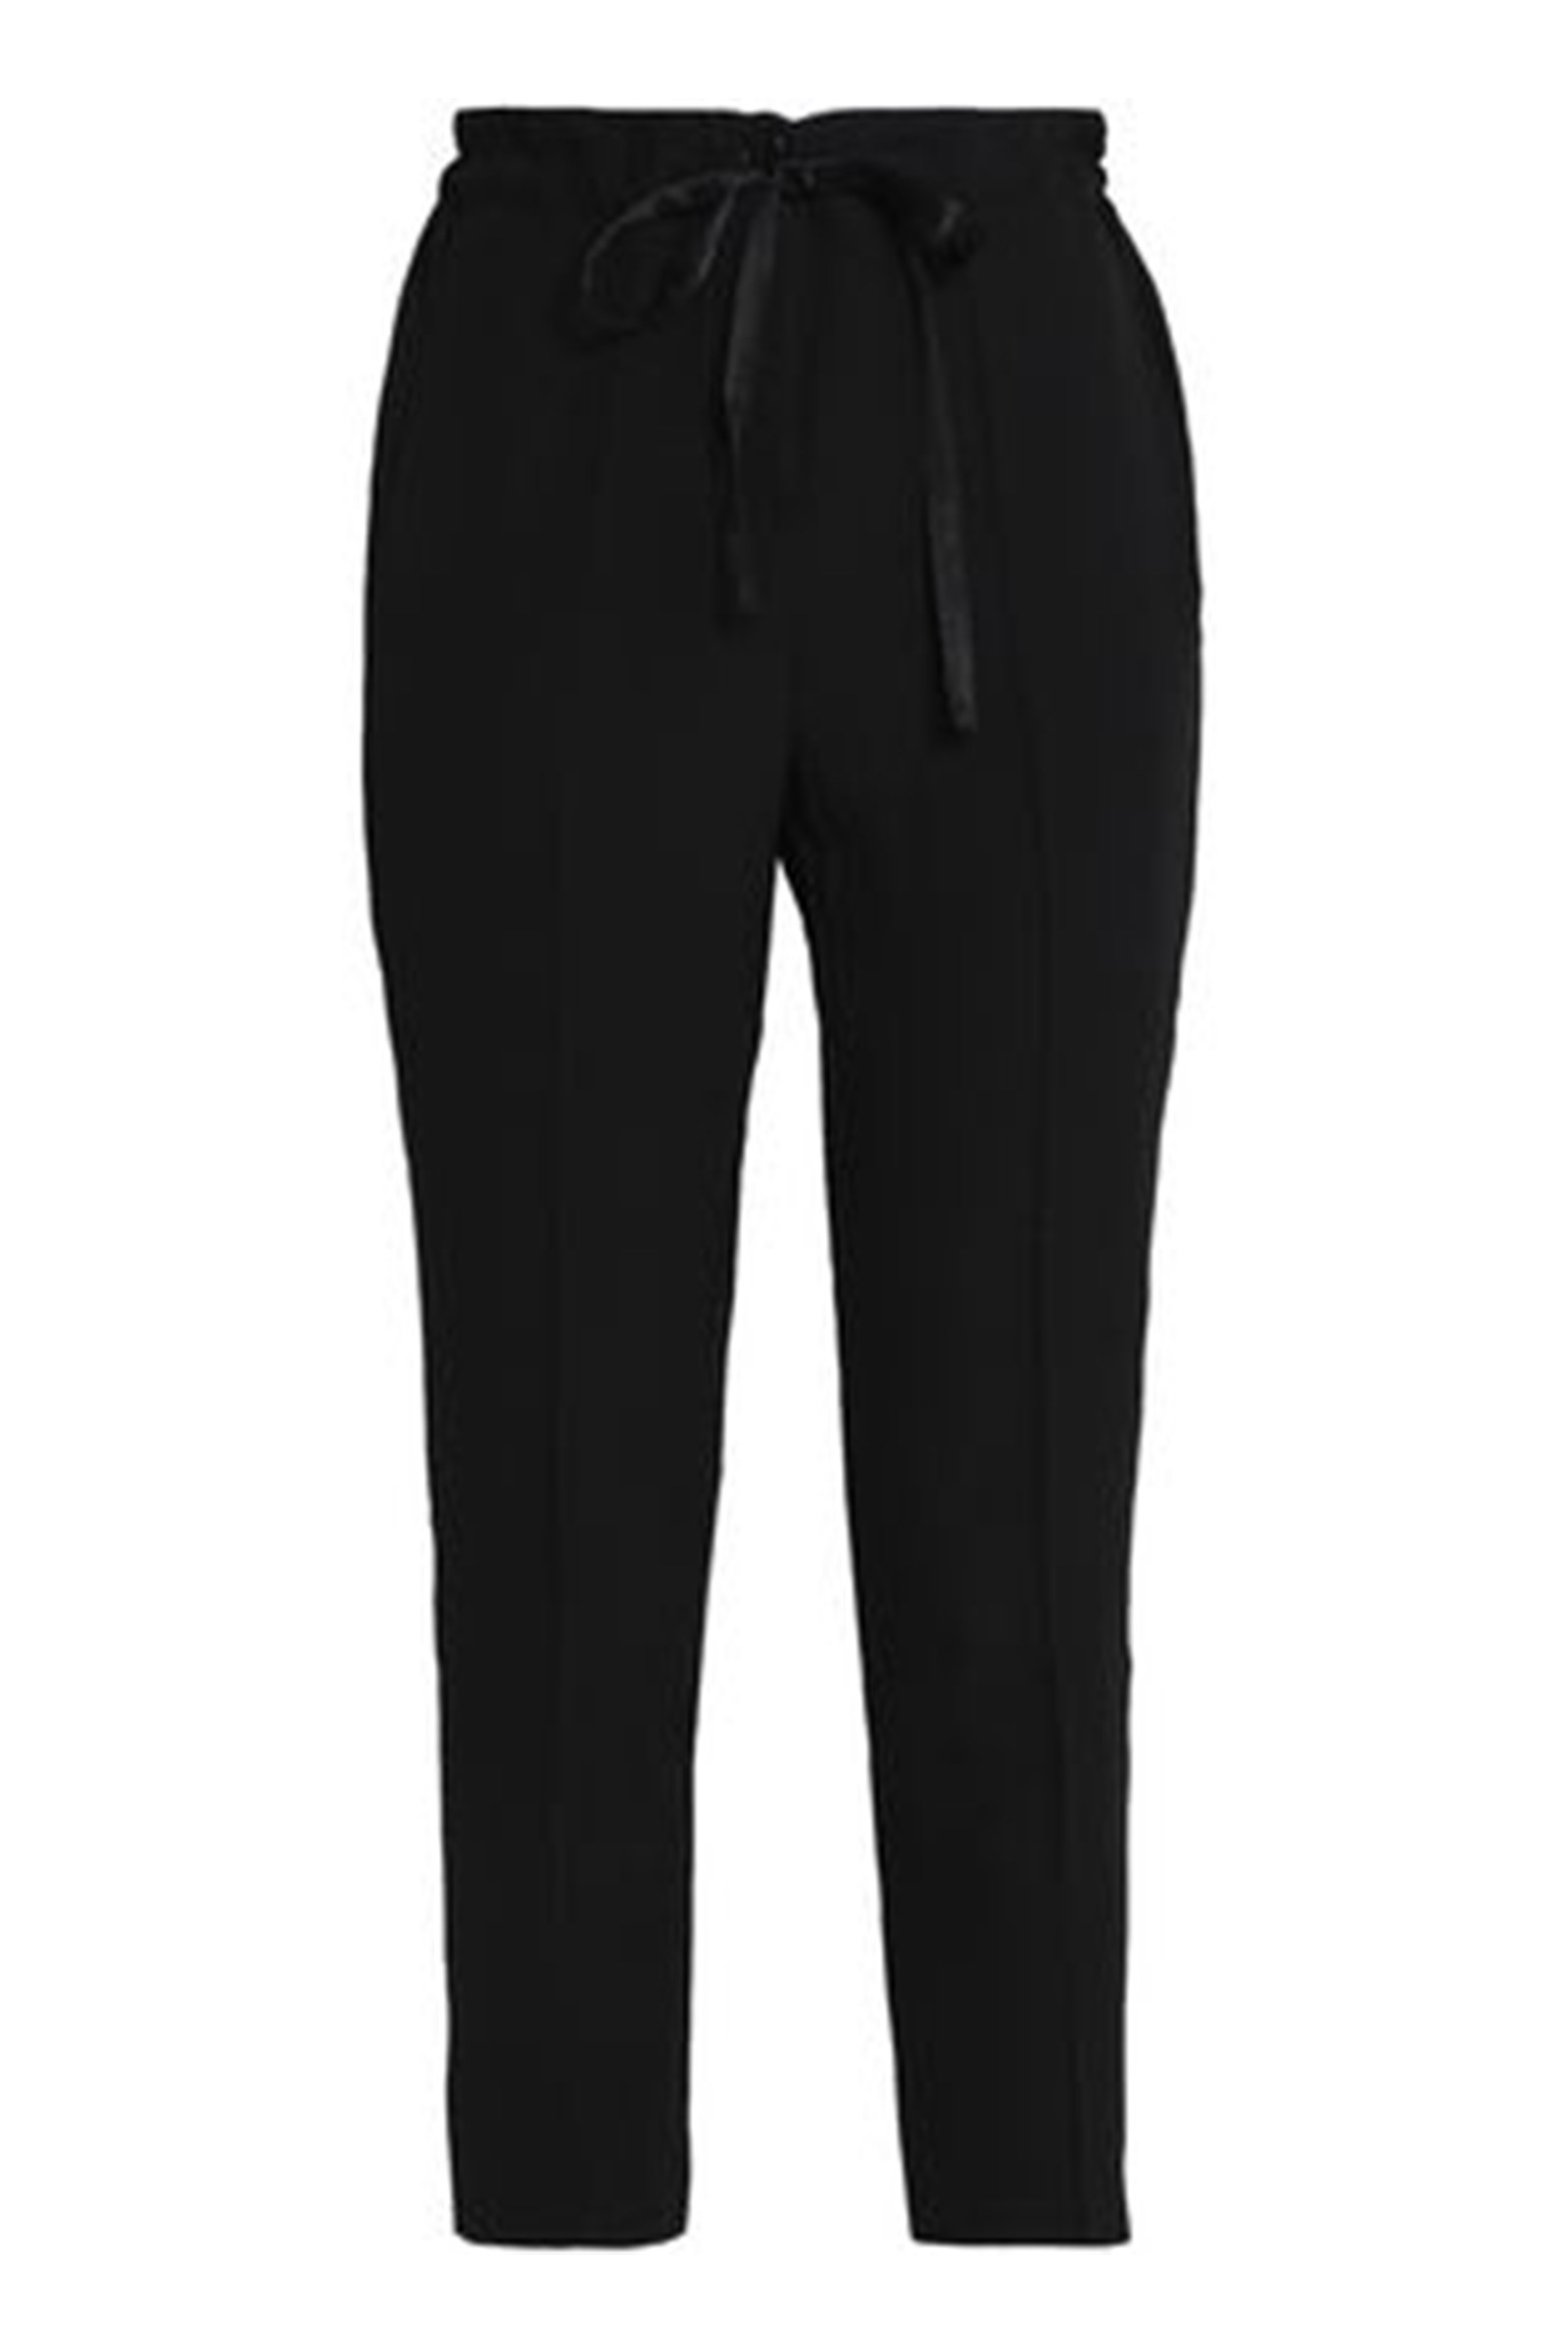 Click to Buy Iris & Ink Trousers